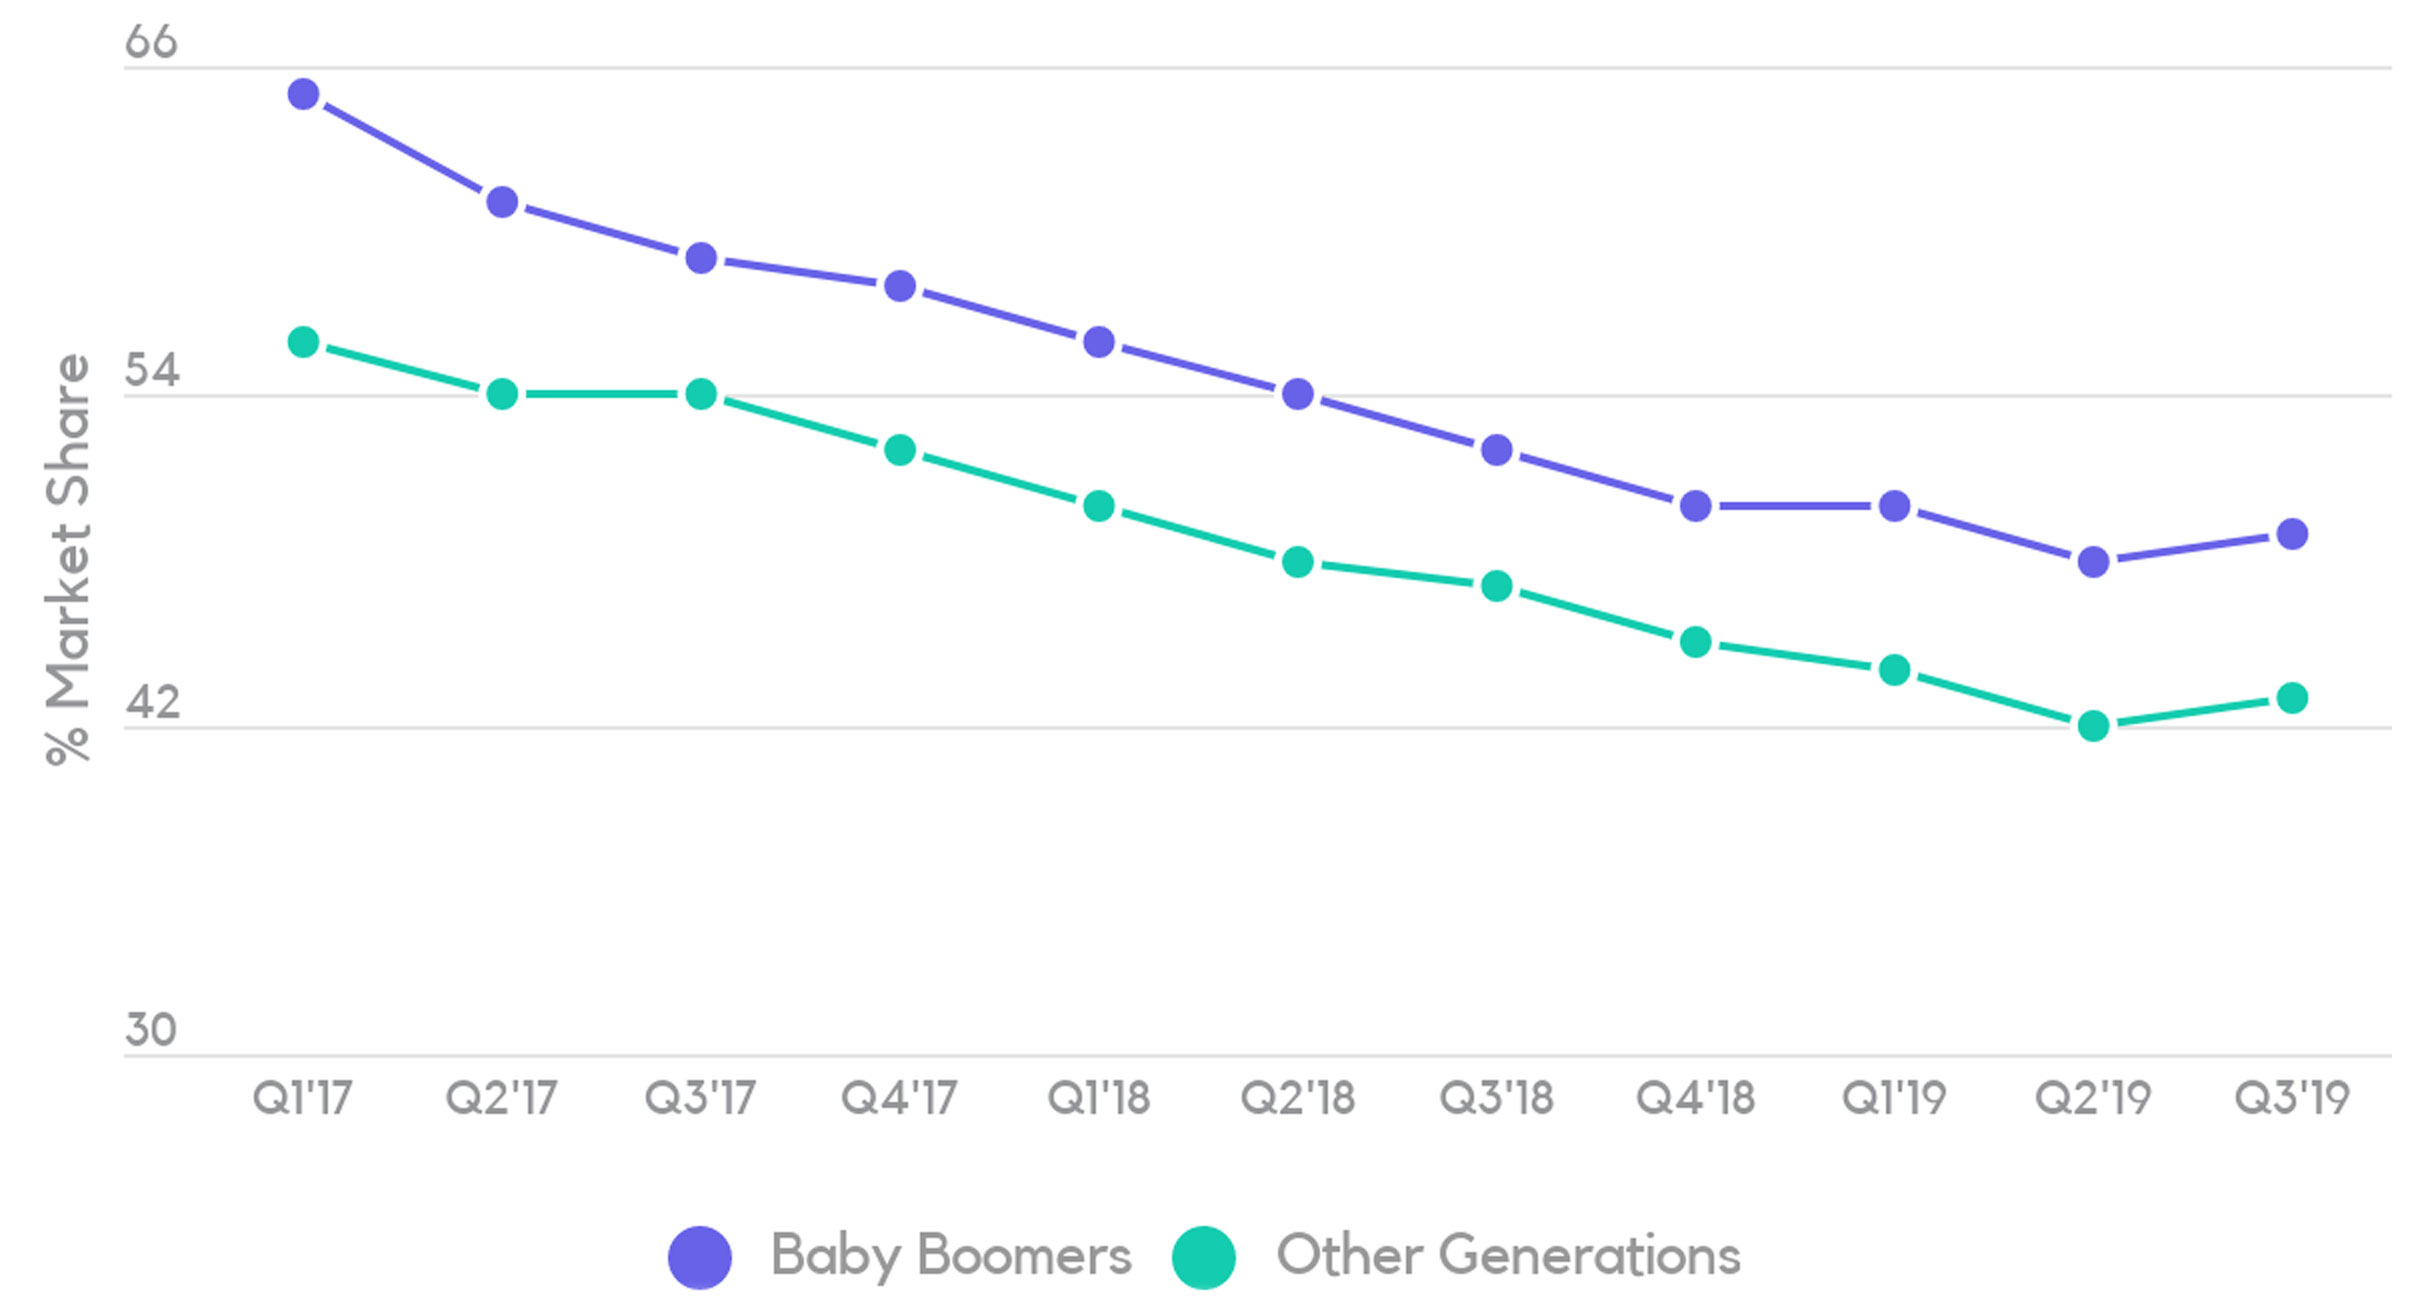 % Cannabis Flower Market Share – Baby Boomers vs. Other Generations